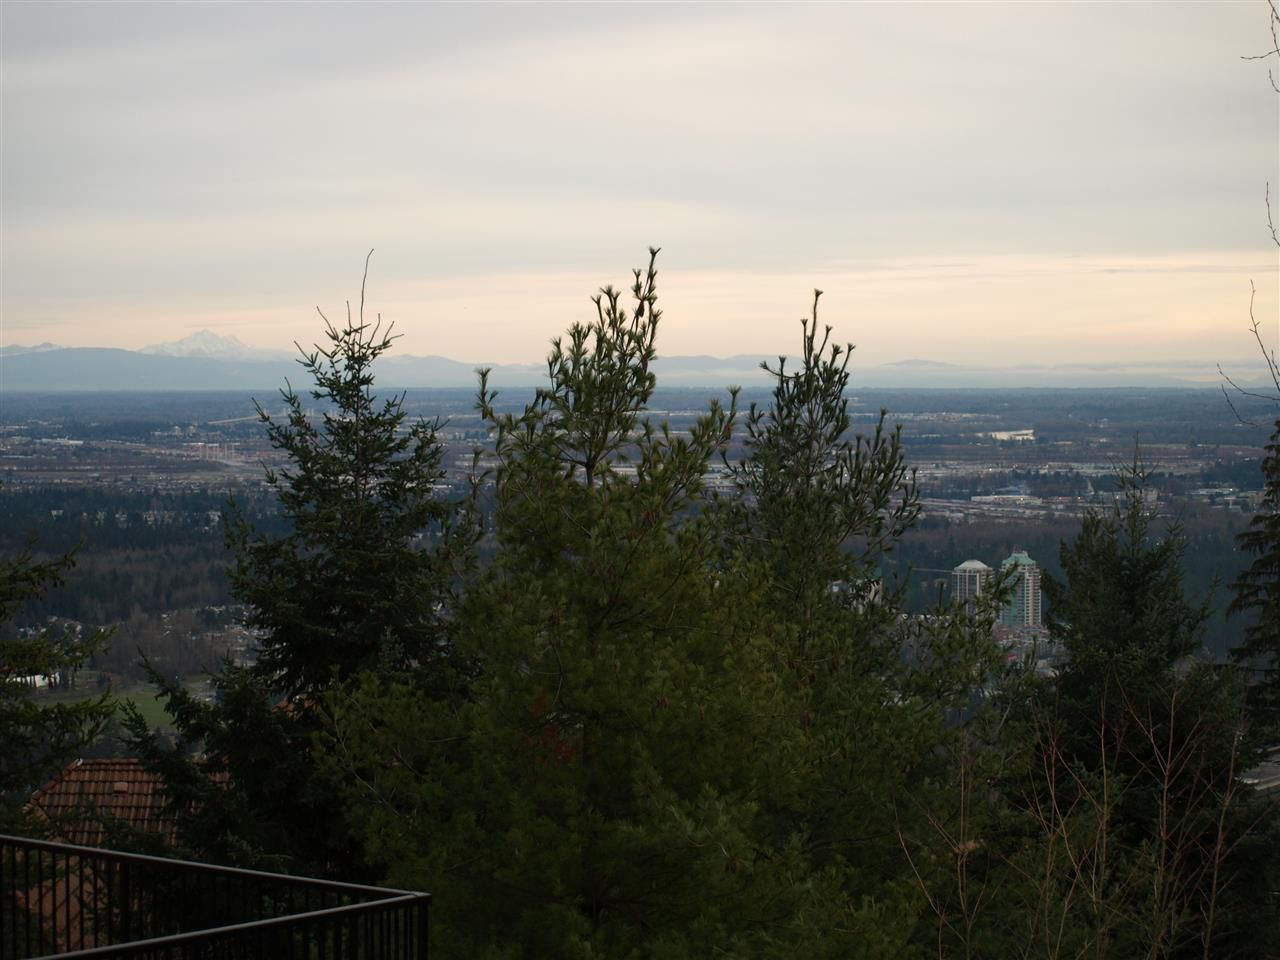 Main Photo: 2980 SUNRIDGE COURT in Coquitlam: Westwood Plateau House for sale : MLS®# R2185935